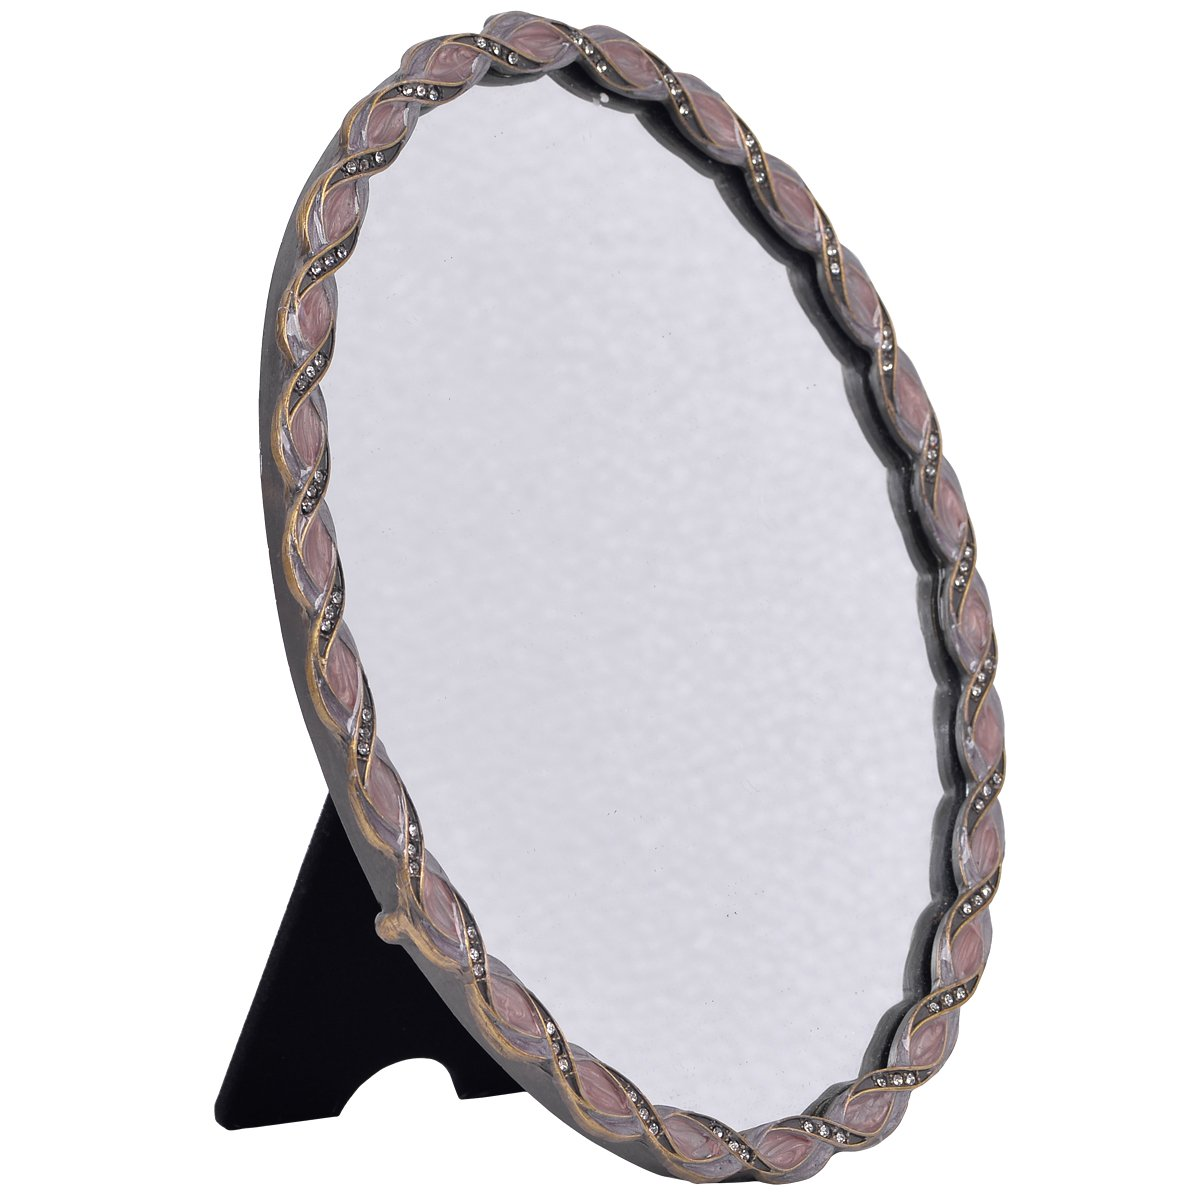 NIKKY HOME Vintage Desktop Pewter Makeup Vanity Mirror, Oval